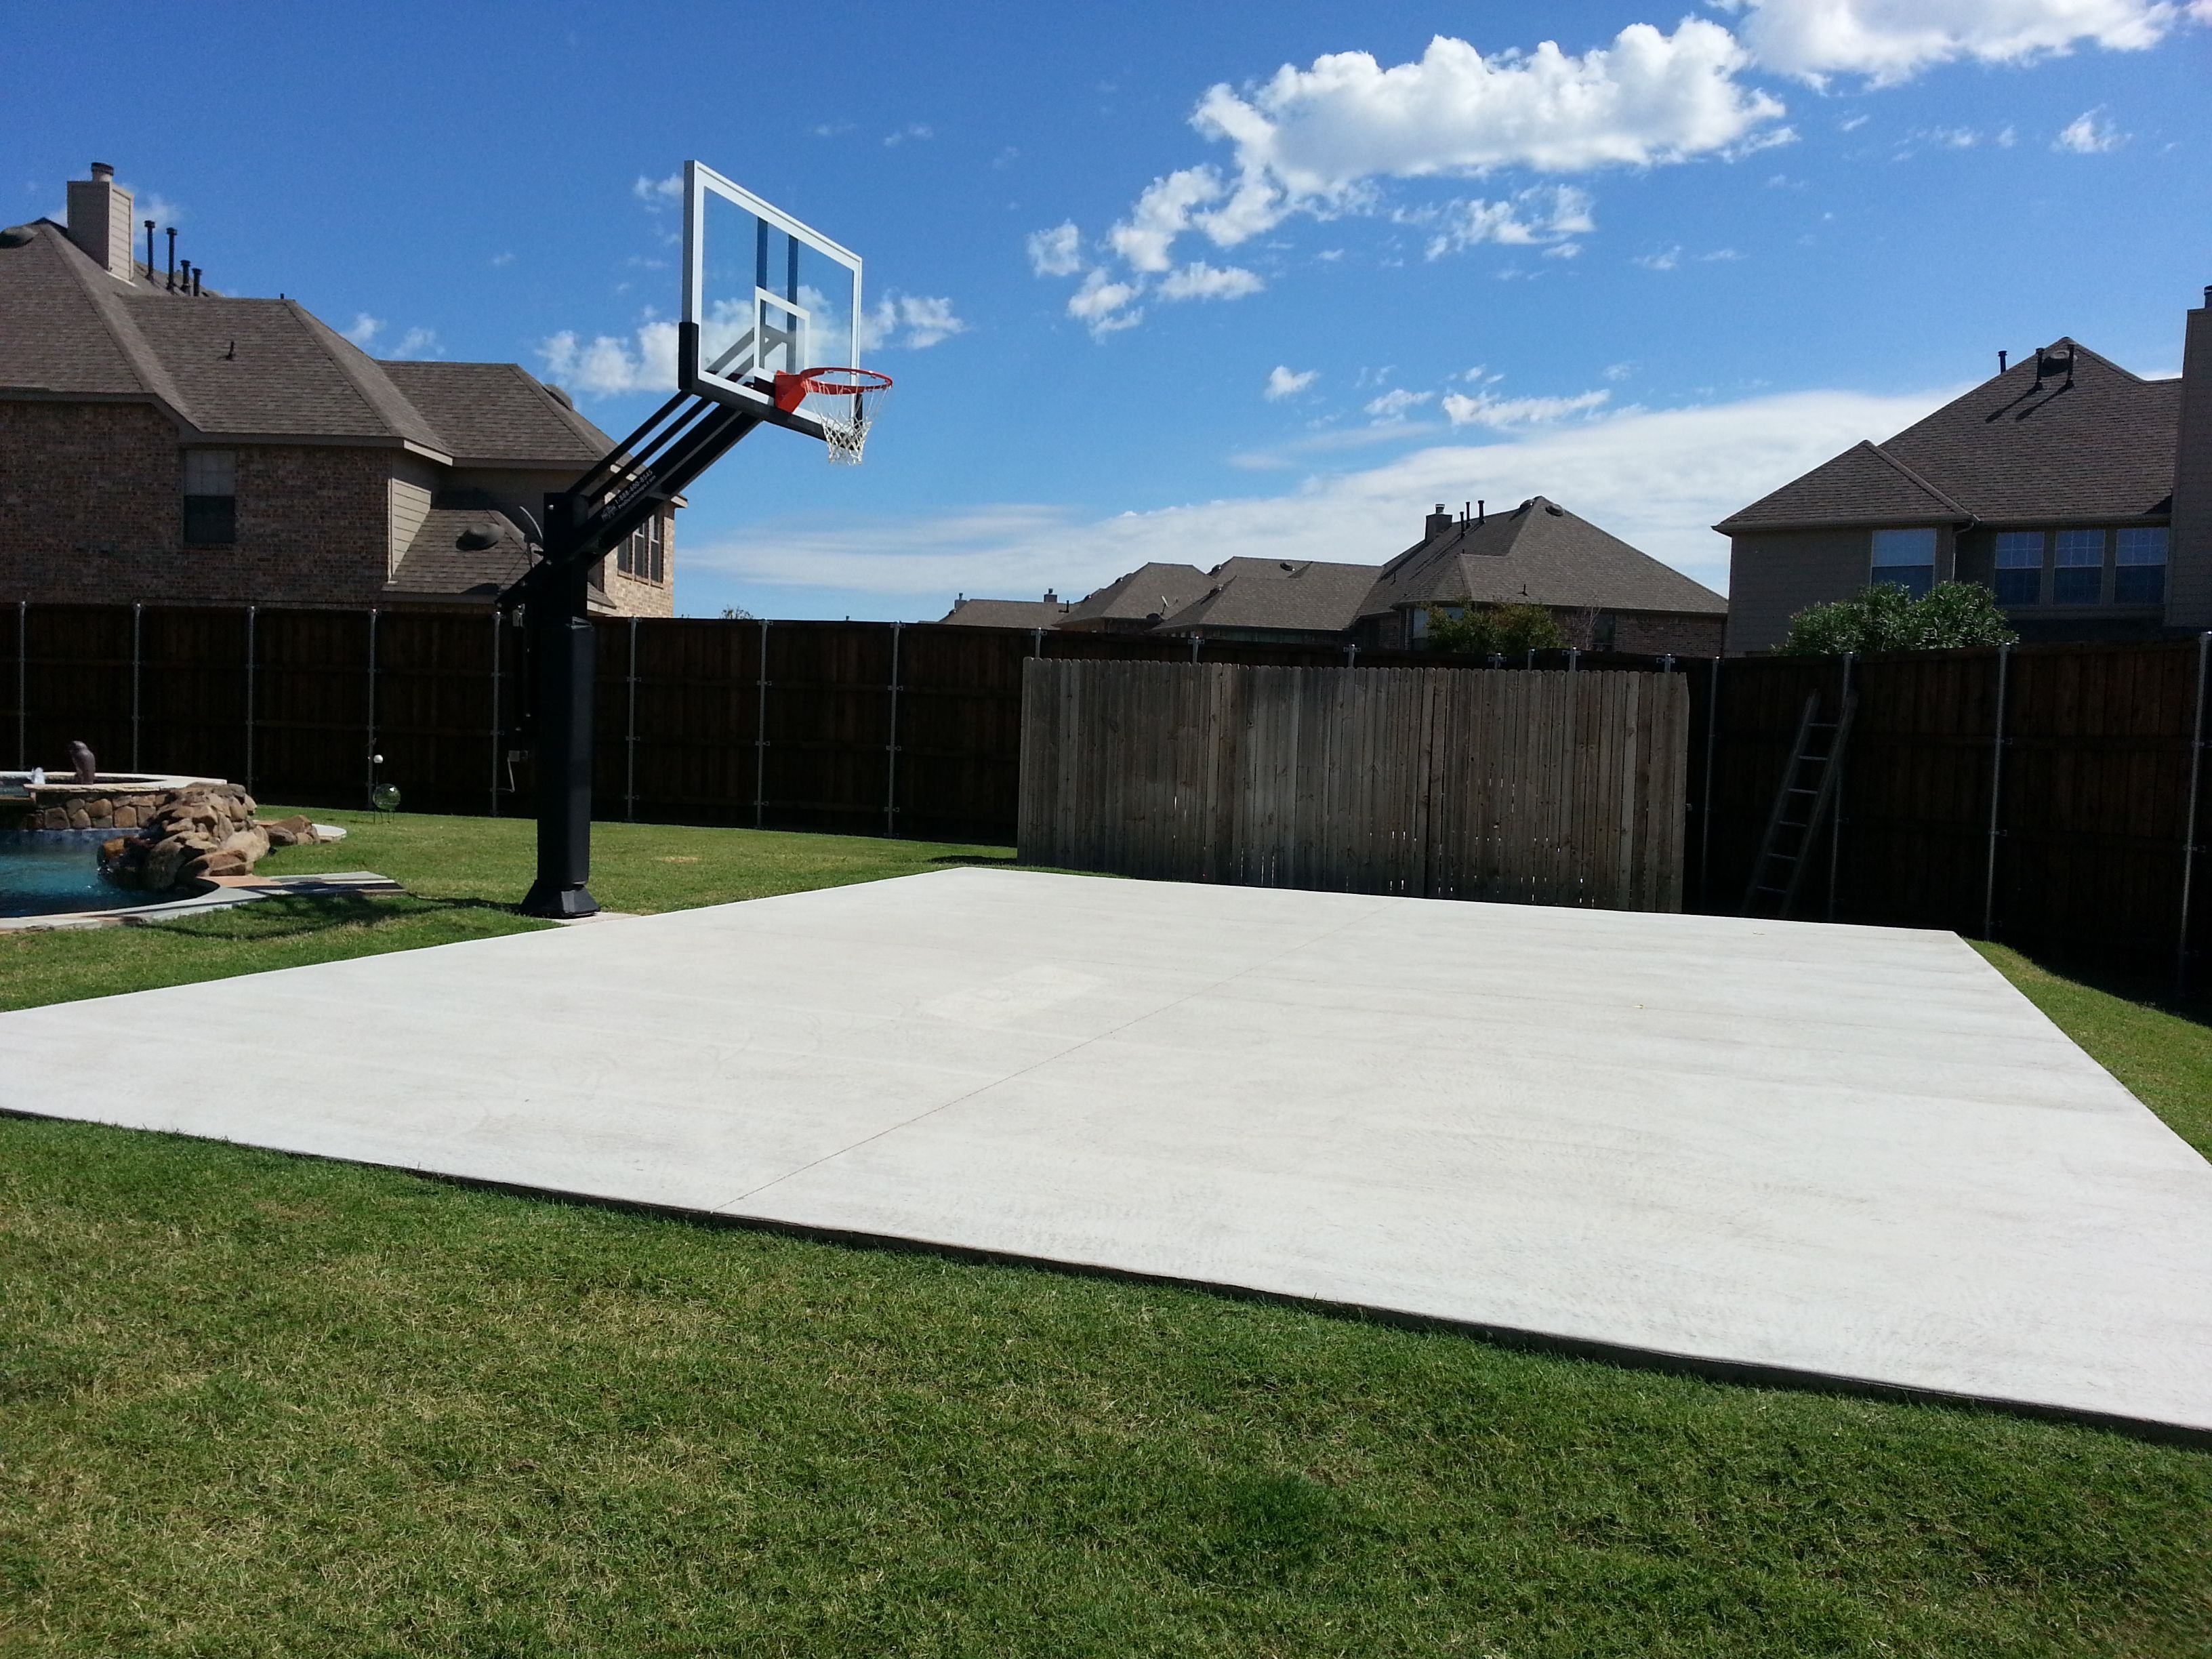 There Is Marks Concrete Slab Court In His Backyard Next To His - Backyard basketball court ideas